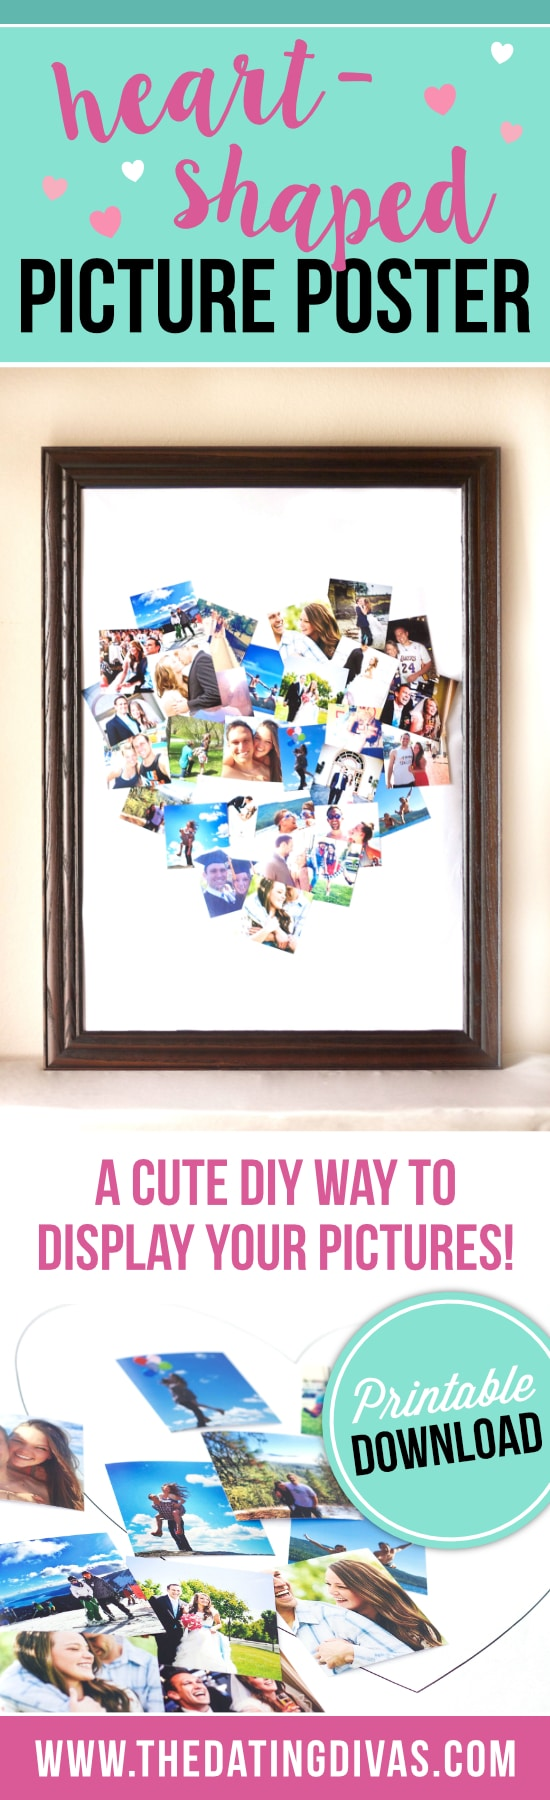 Heart-Shaped Picture Poster - The Dating Divas